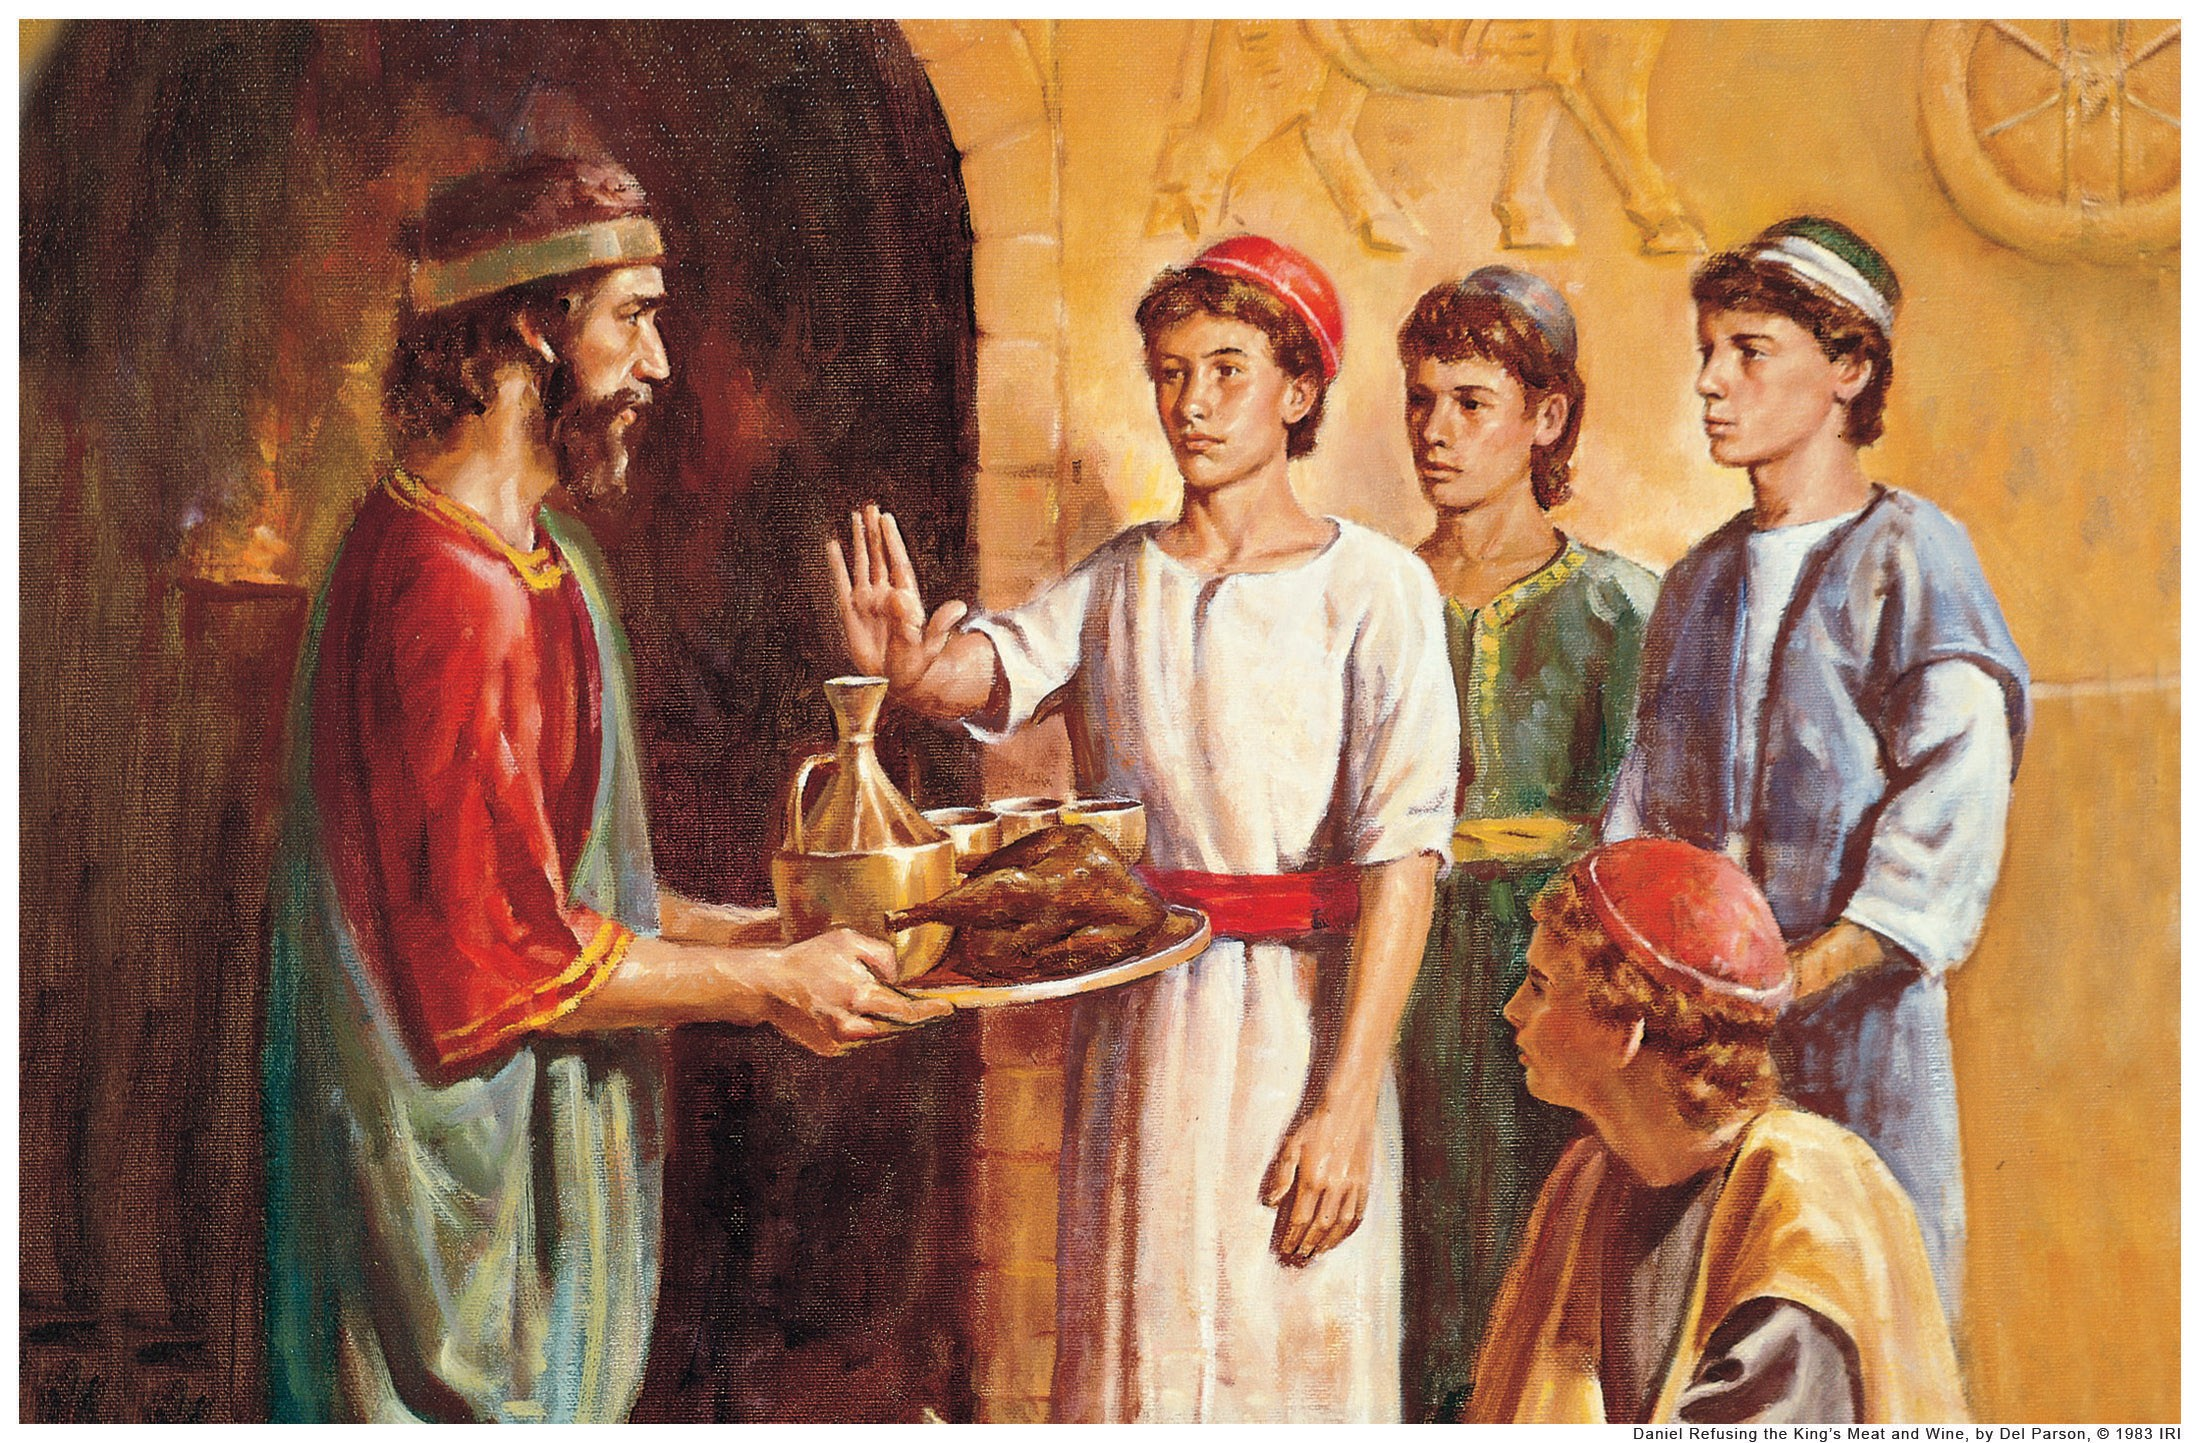 The Book of Daniel Pt 4